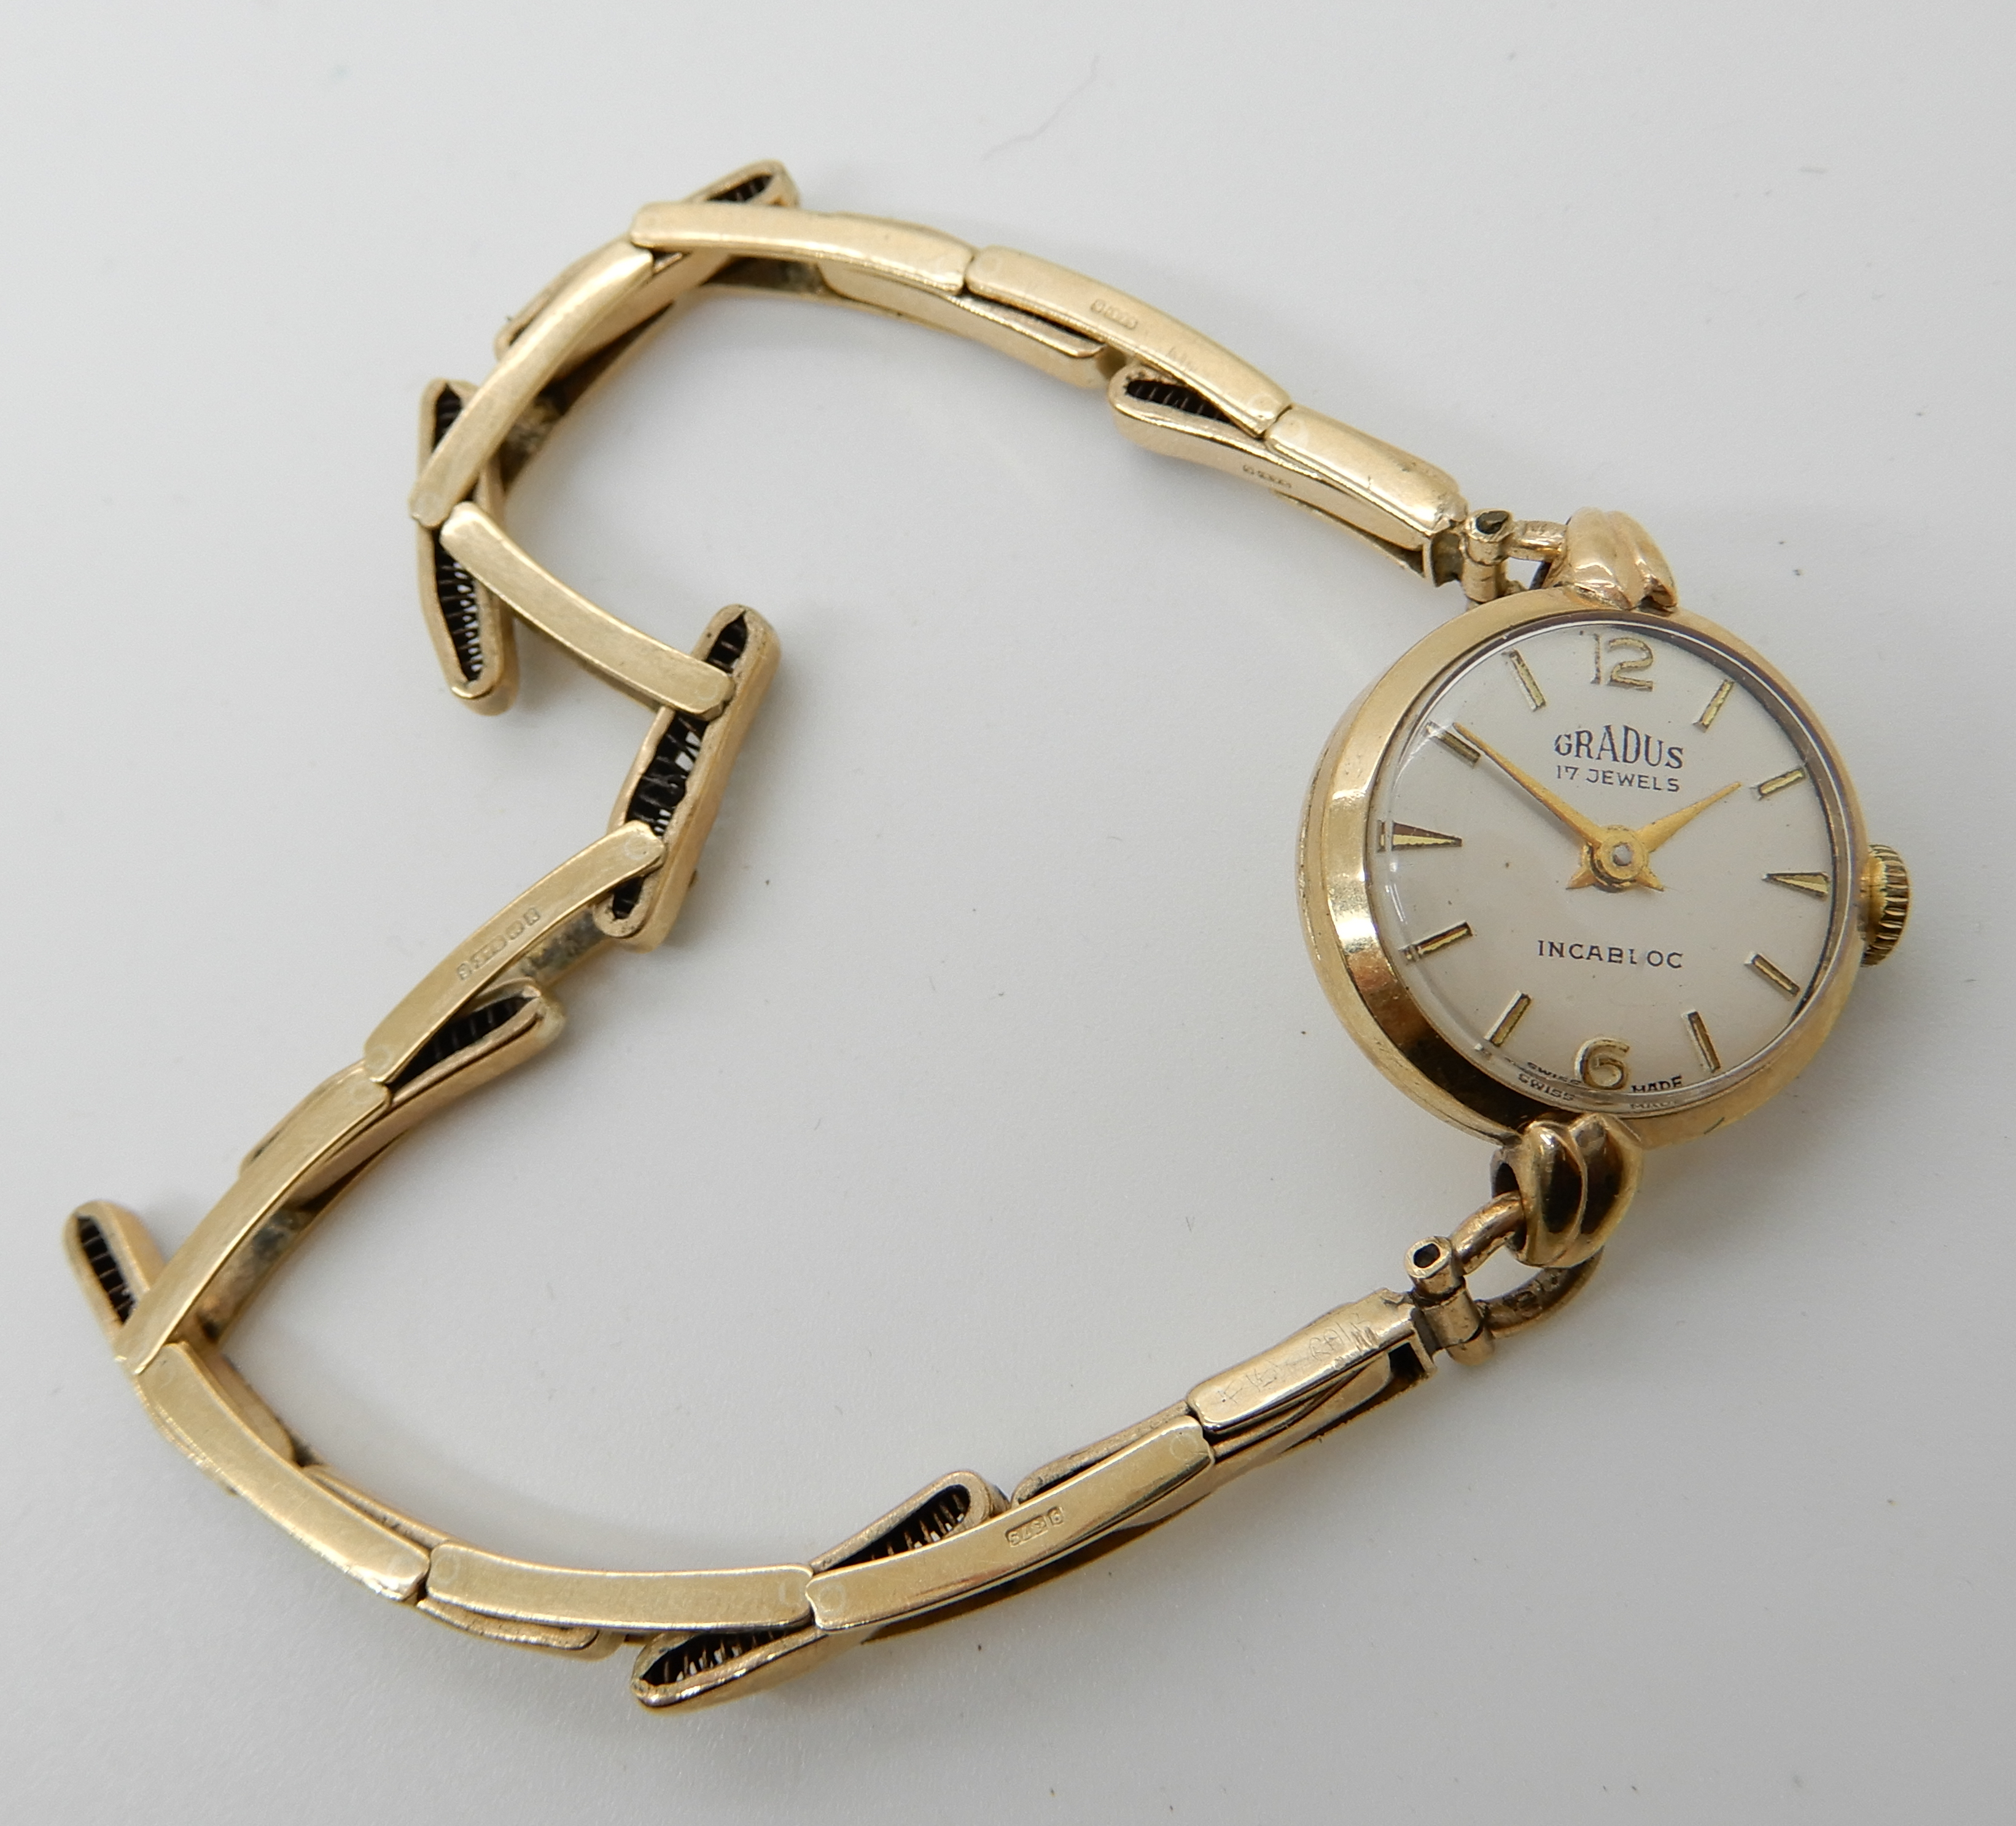 Lot 28 - A 9ct Gradus ladies vintage watch and expanding strap, weight including mechanism 11.5gms